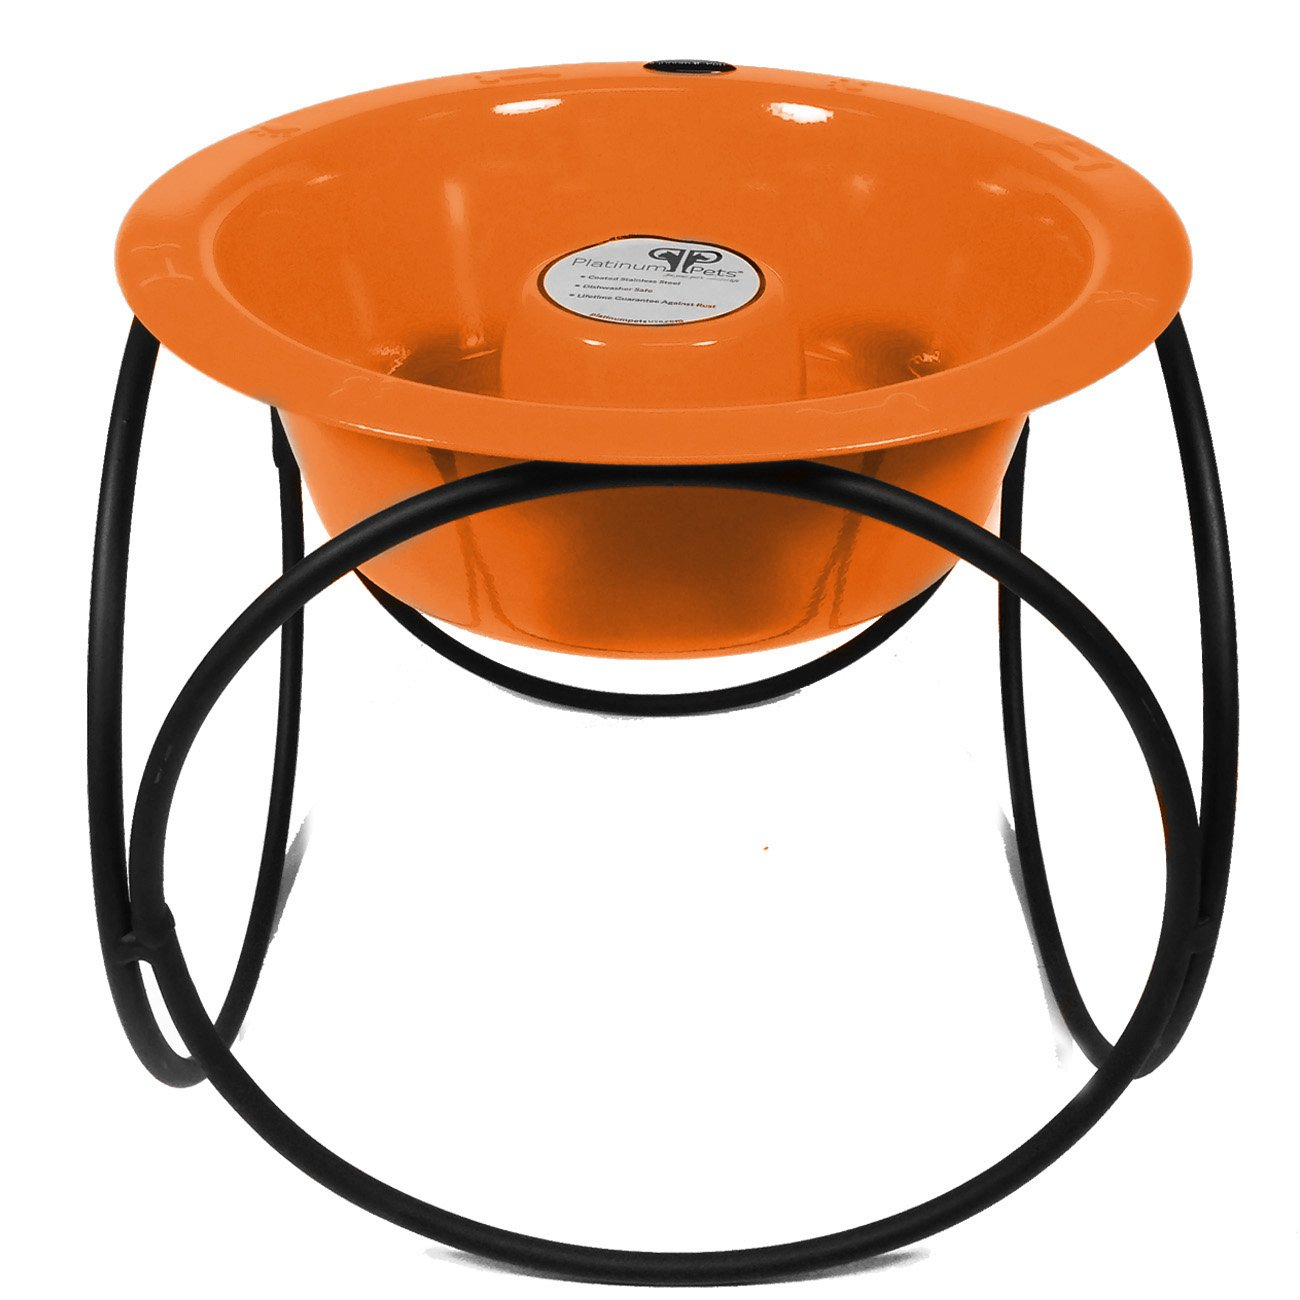 Platinum Pets Slow Eating Single Olympic Diner Feeder with Stainless Steel Dog Bowl, Hunter Orange by Platinum Pets